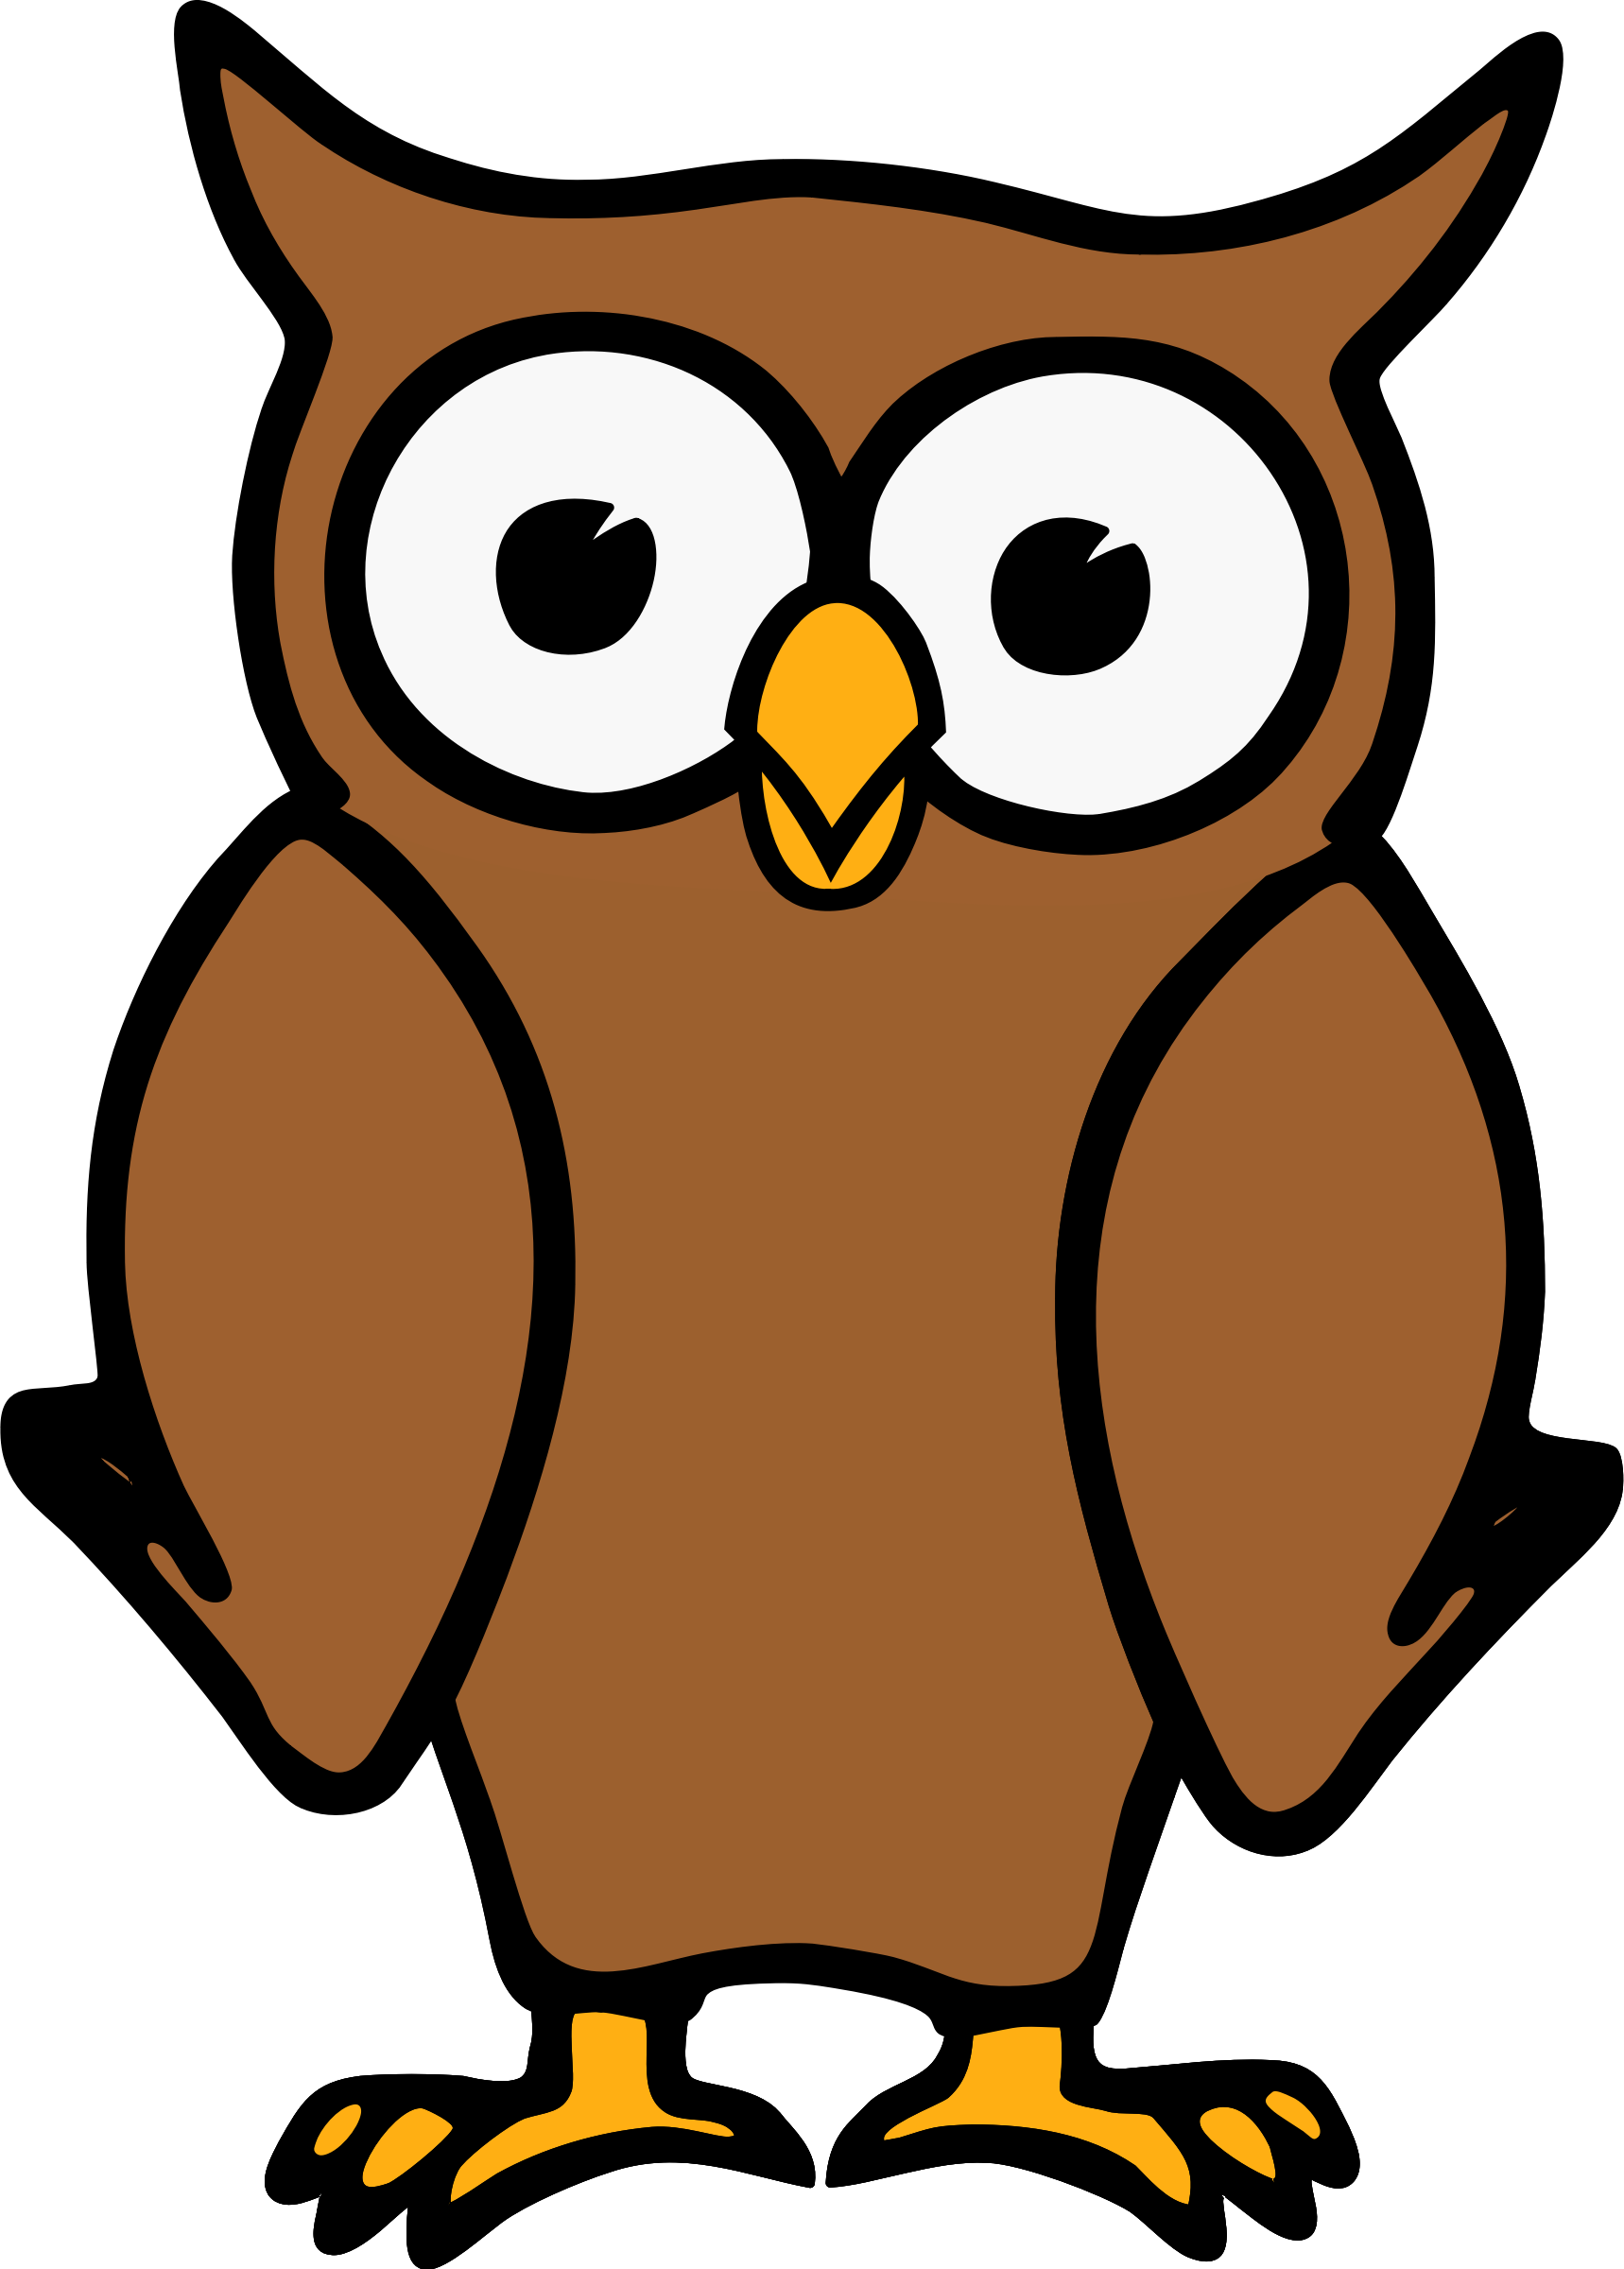 Car facing forward clipart picture library stock Owl by @etourist, Brown cartoon owl standing and facing forward., on ... picture library stock